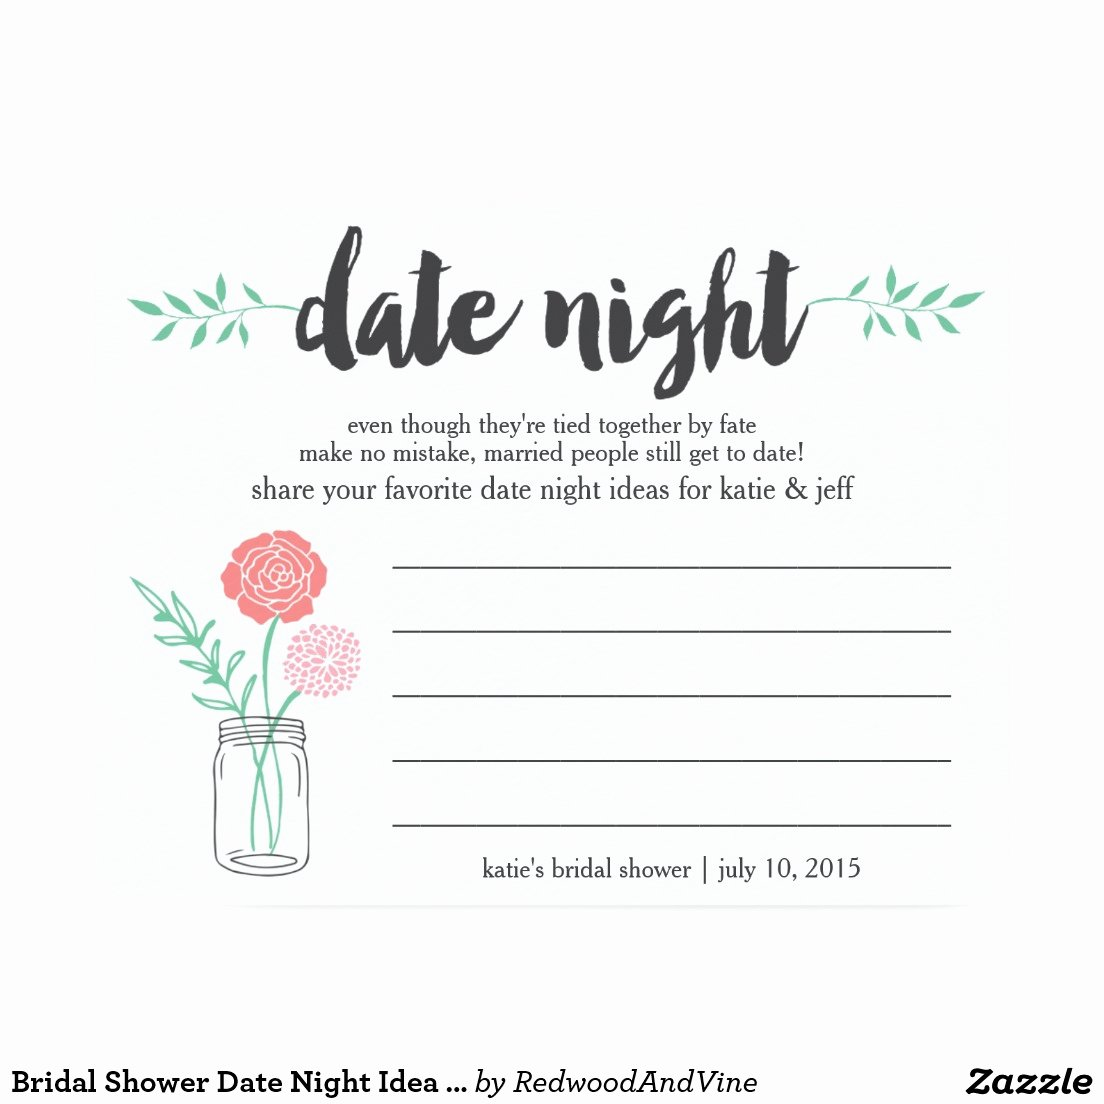 Date Night Invitation Template Unique Printable Date Night Invitations southernsoulblog